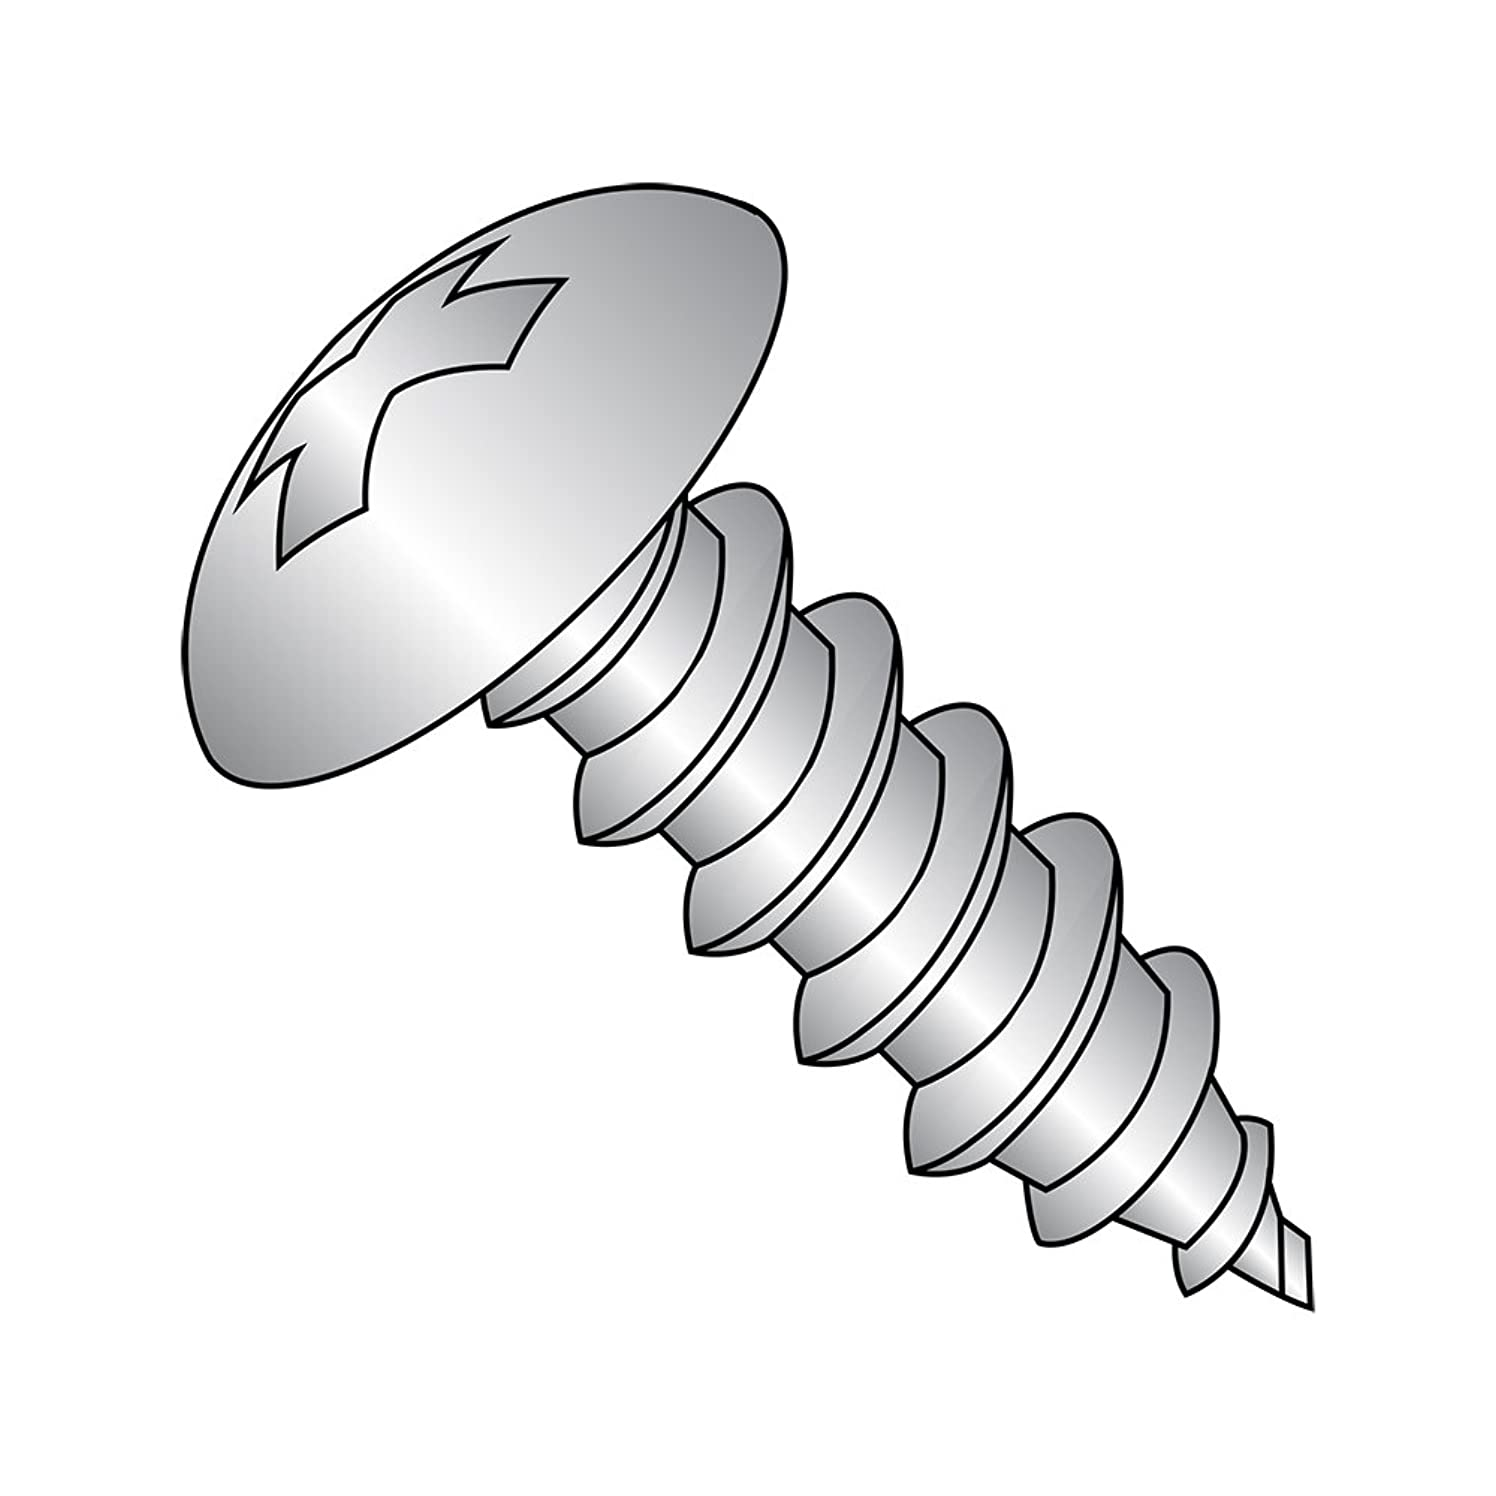 18-8 Stainless Steel Sheet Metal Screw, Plain Finish, Truss Head, Phillips Drive, Type AB, #4-24 Thread Size, 3/8